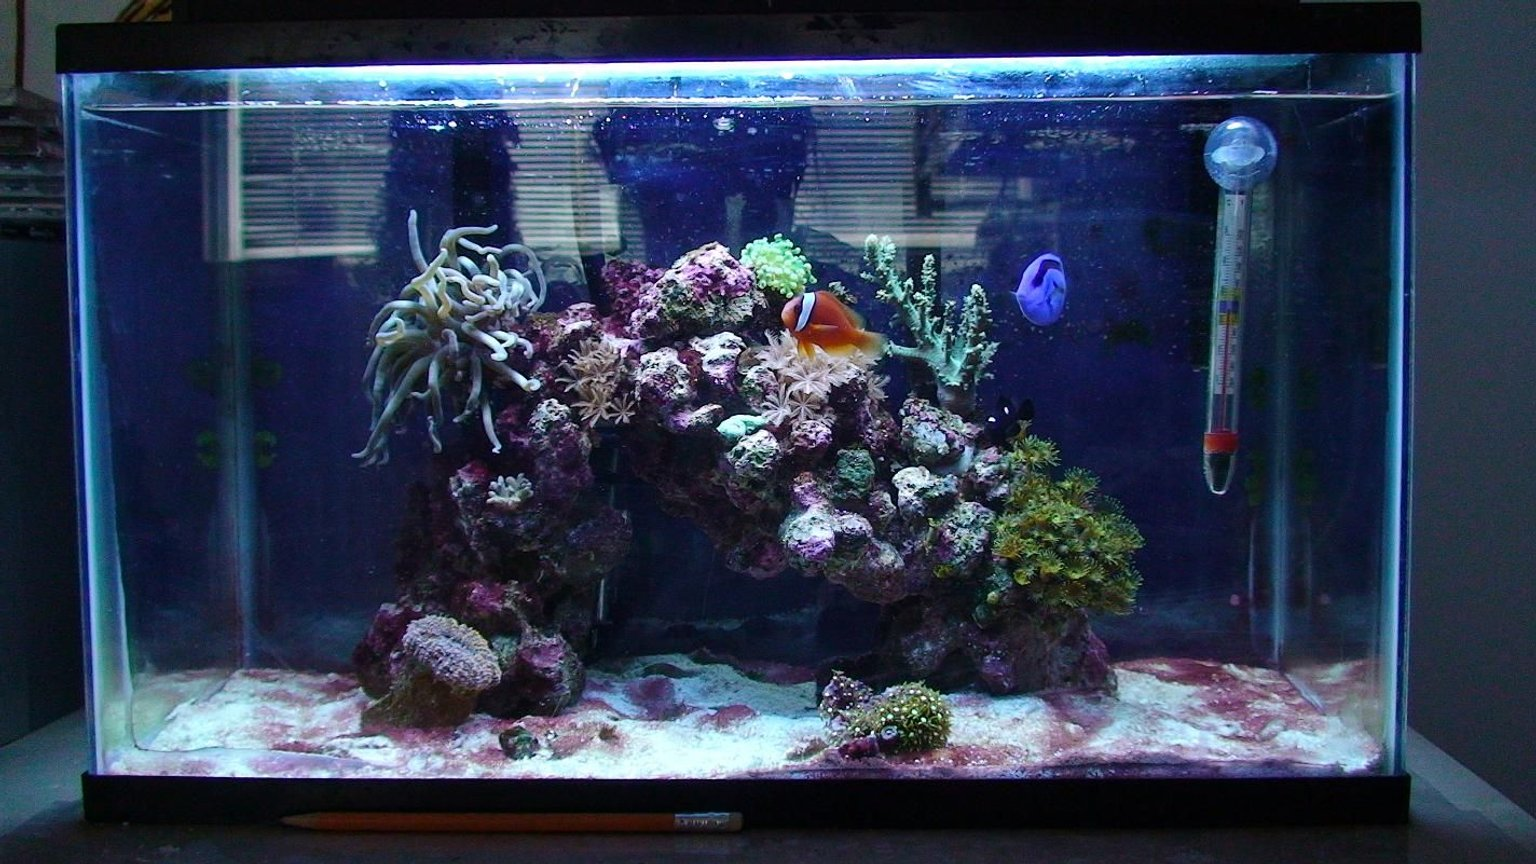 10 gallons reef tank (mostly live coral and fish) - This is my 10 gallon reef tank, see my profile for more details. I spent $100 Canadian for the entire set up. The lady couldn't get rid of the cyanobacteria, so I bought the tank. I am currently working on getting rid of the cyano bacteria.